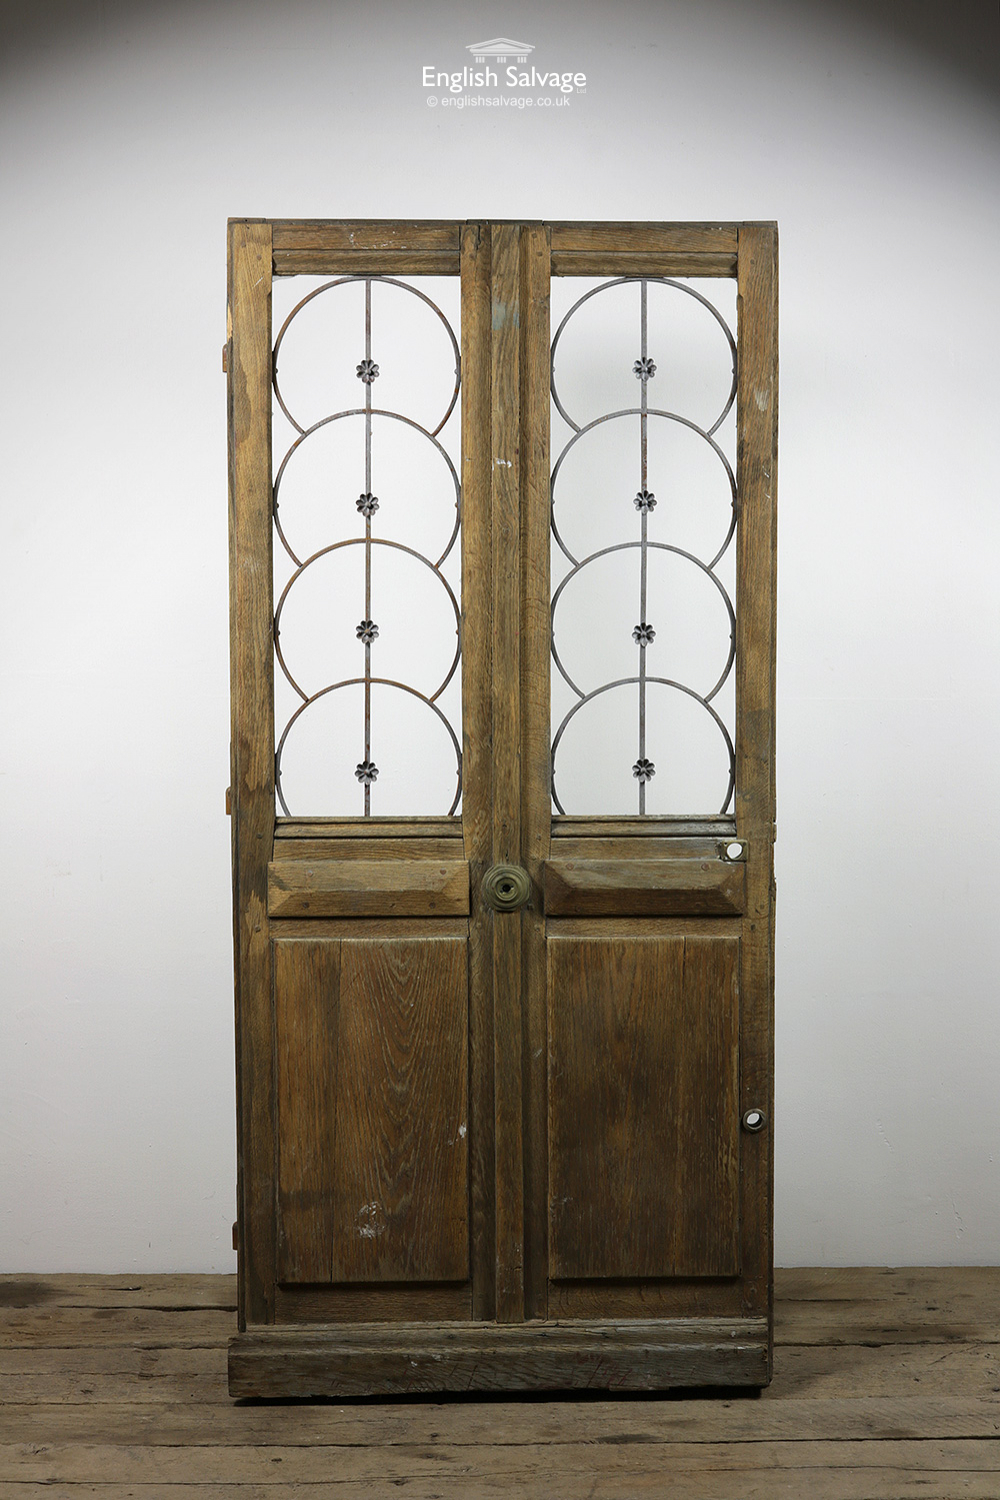 to from letter oak door with ornate metalwork 25296 | old french oak door with ornate metalwork 25296 pic1 size3